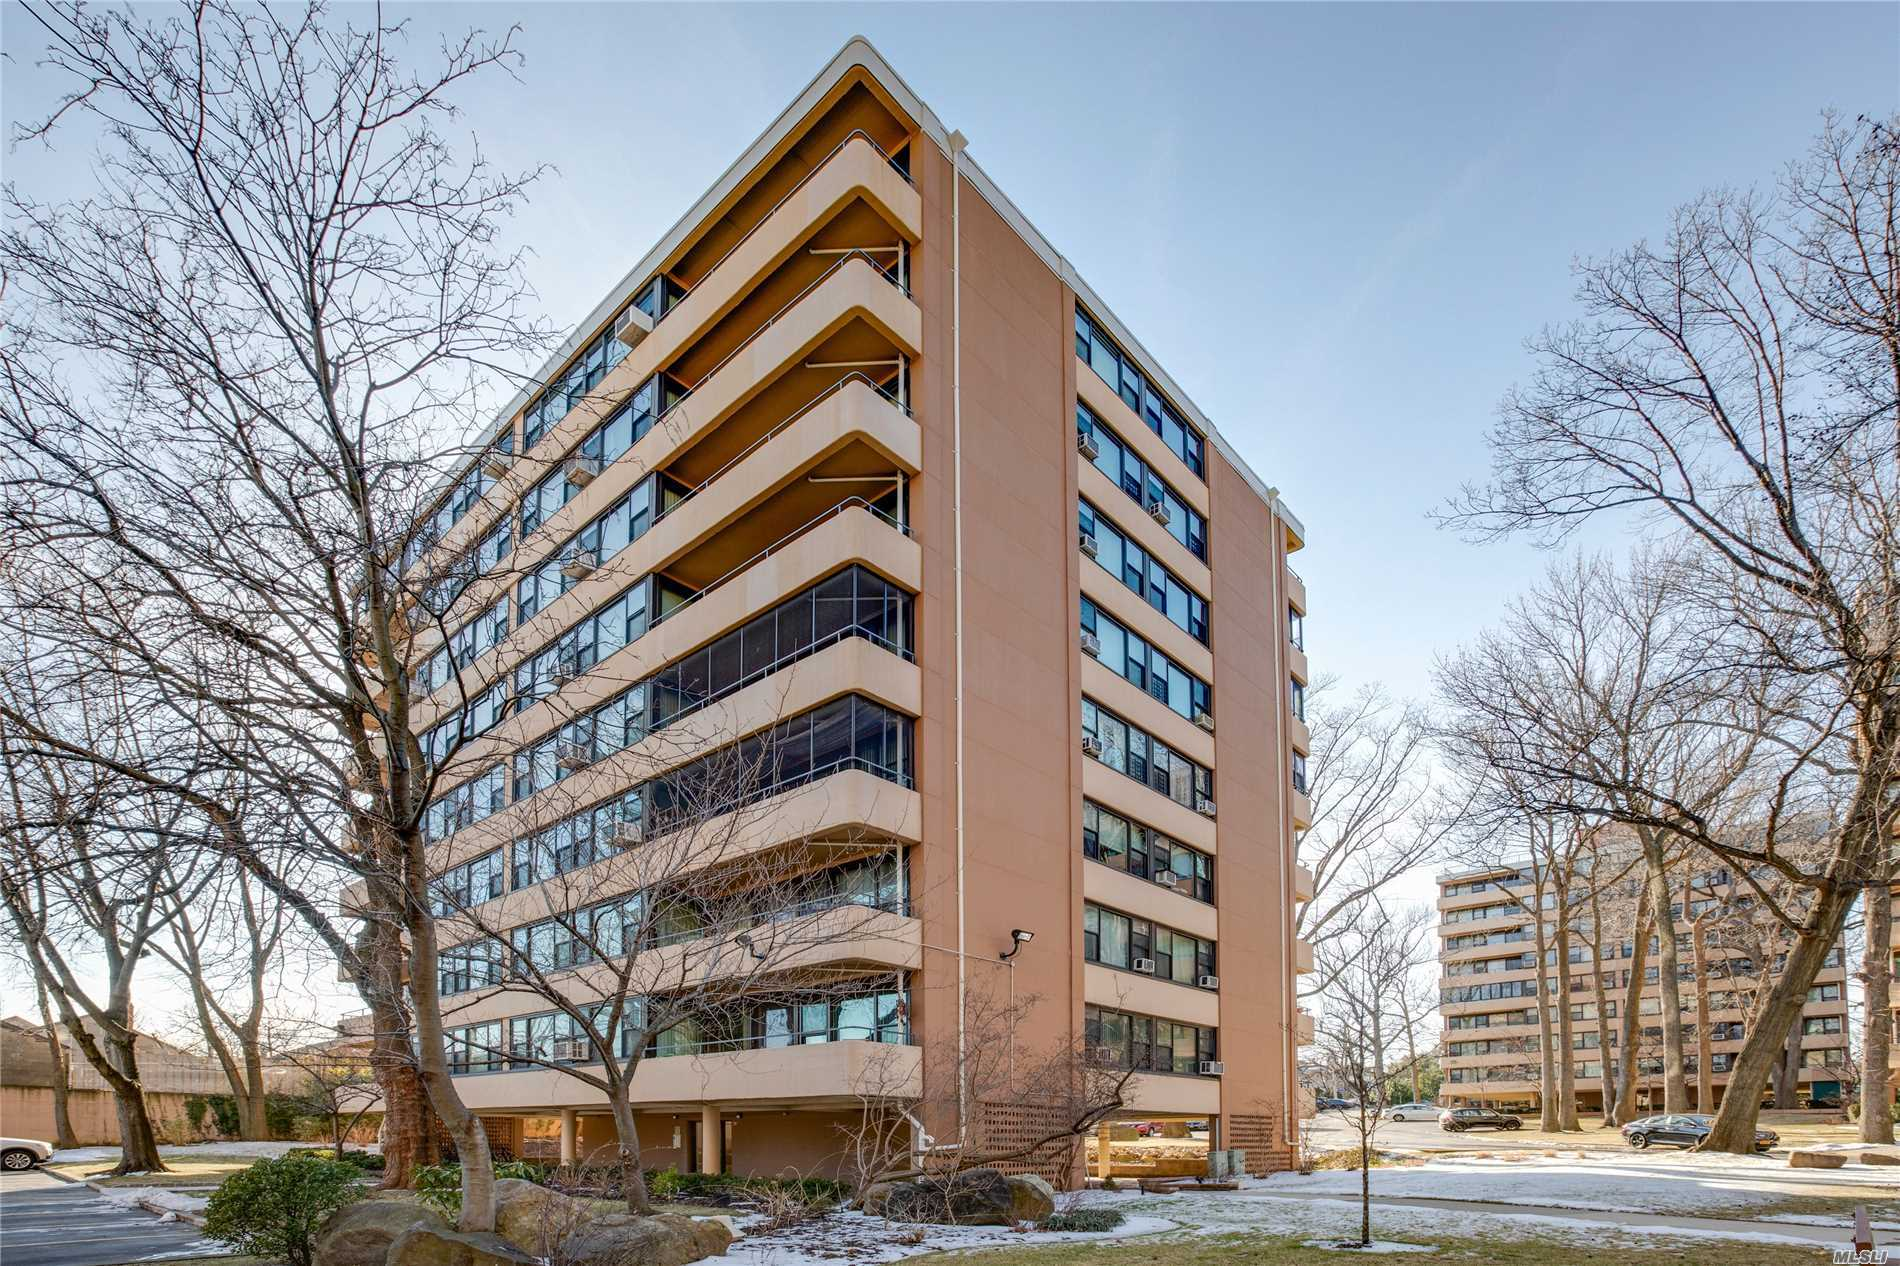 Beechhurst Le Havre 2 Bedroom Apartment With Desirable Eastern Exposure. Enjoy The Morning Sunrise With Expansive Views Of Beechhurst, Bayside And Throgs Neck Bridge. The Renovated Kitchen And Bath, Prime Location And Parking Space Make This An Excellent Opportunity For All! Le Havre Development Offers 2 Outdoor Pools, Tennis, Gym & Cafe. Express Bus To Nyc And Local Bus Q15 To Flushing.